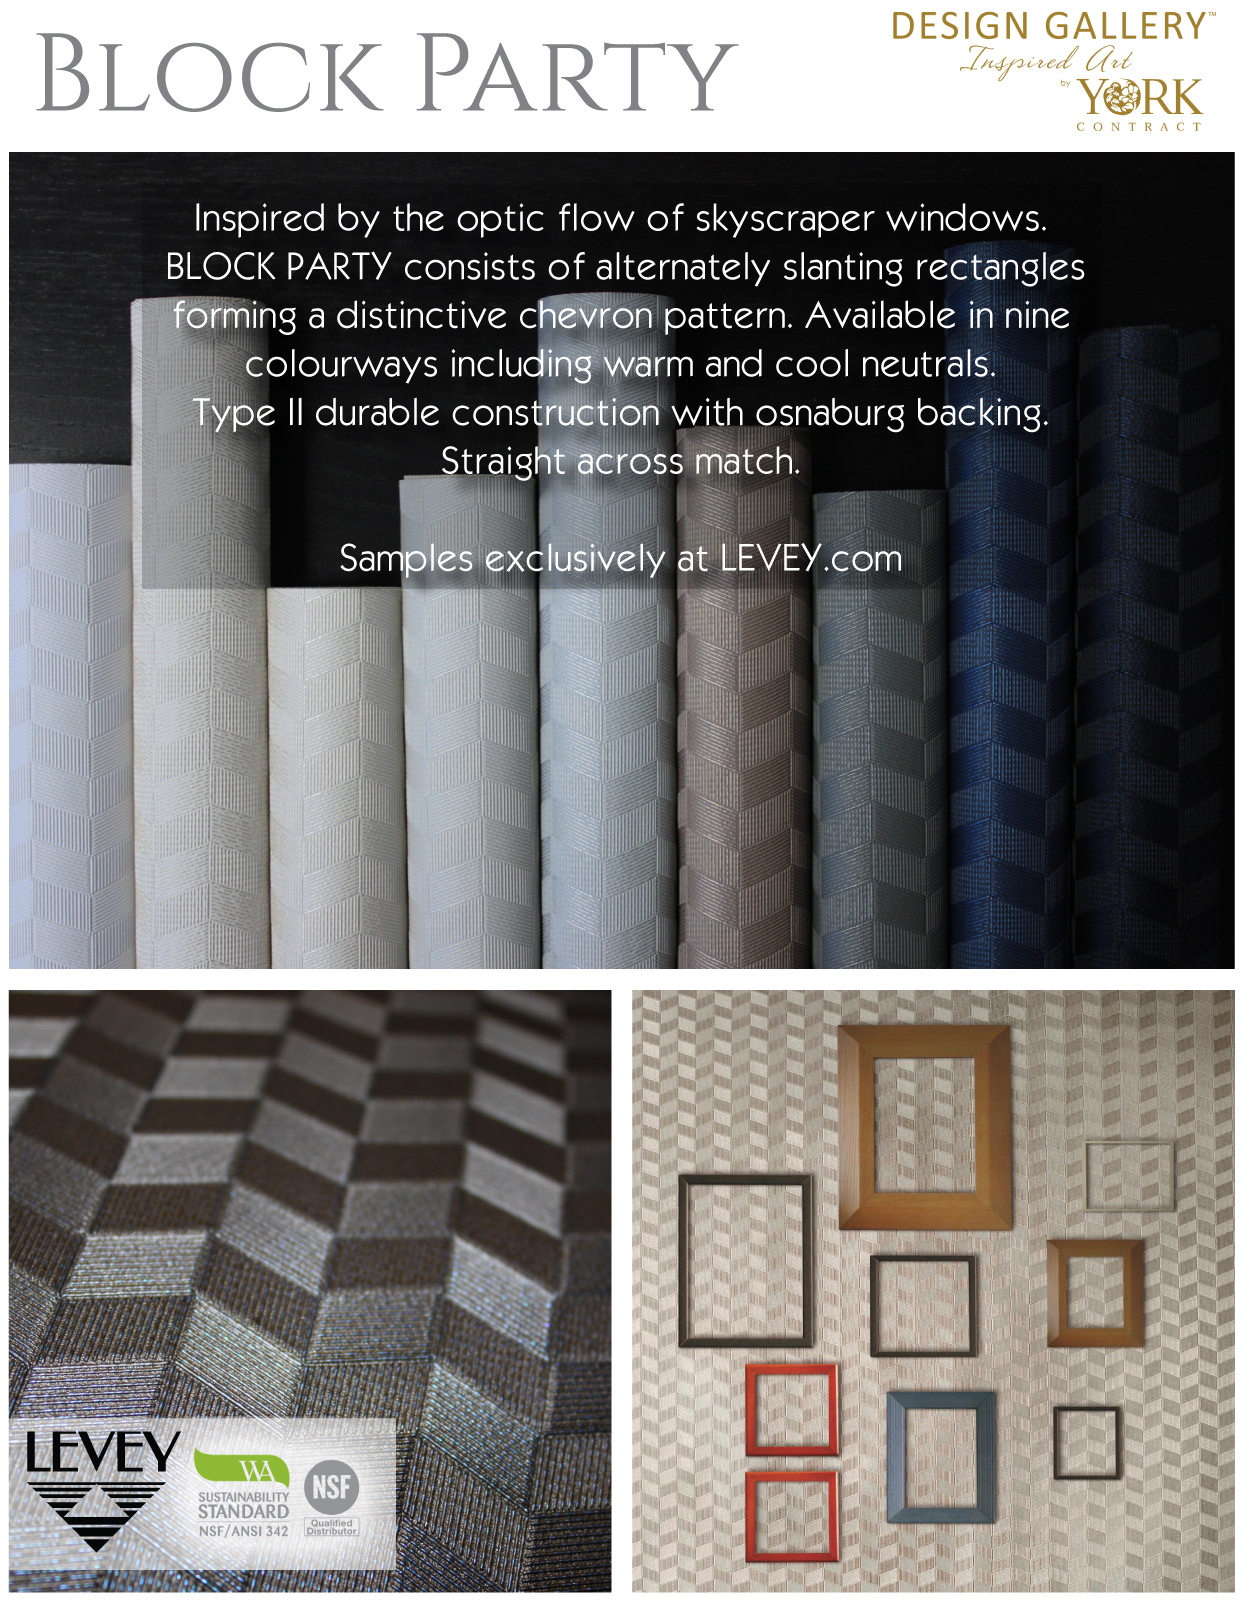 Block Party Wallcovering from Levey Wallcoverings and Architectural Finishes